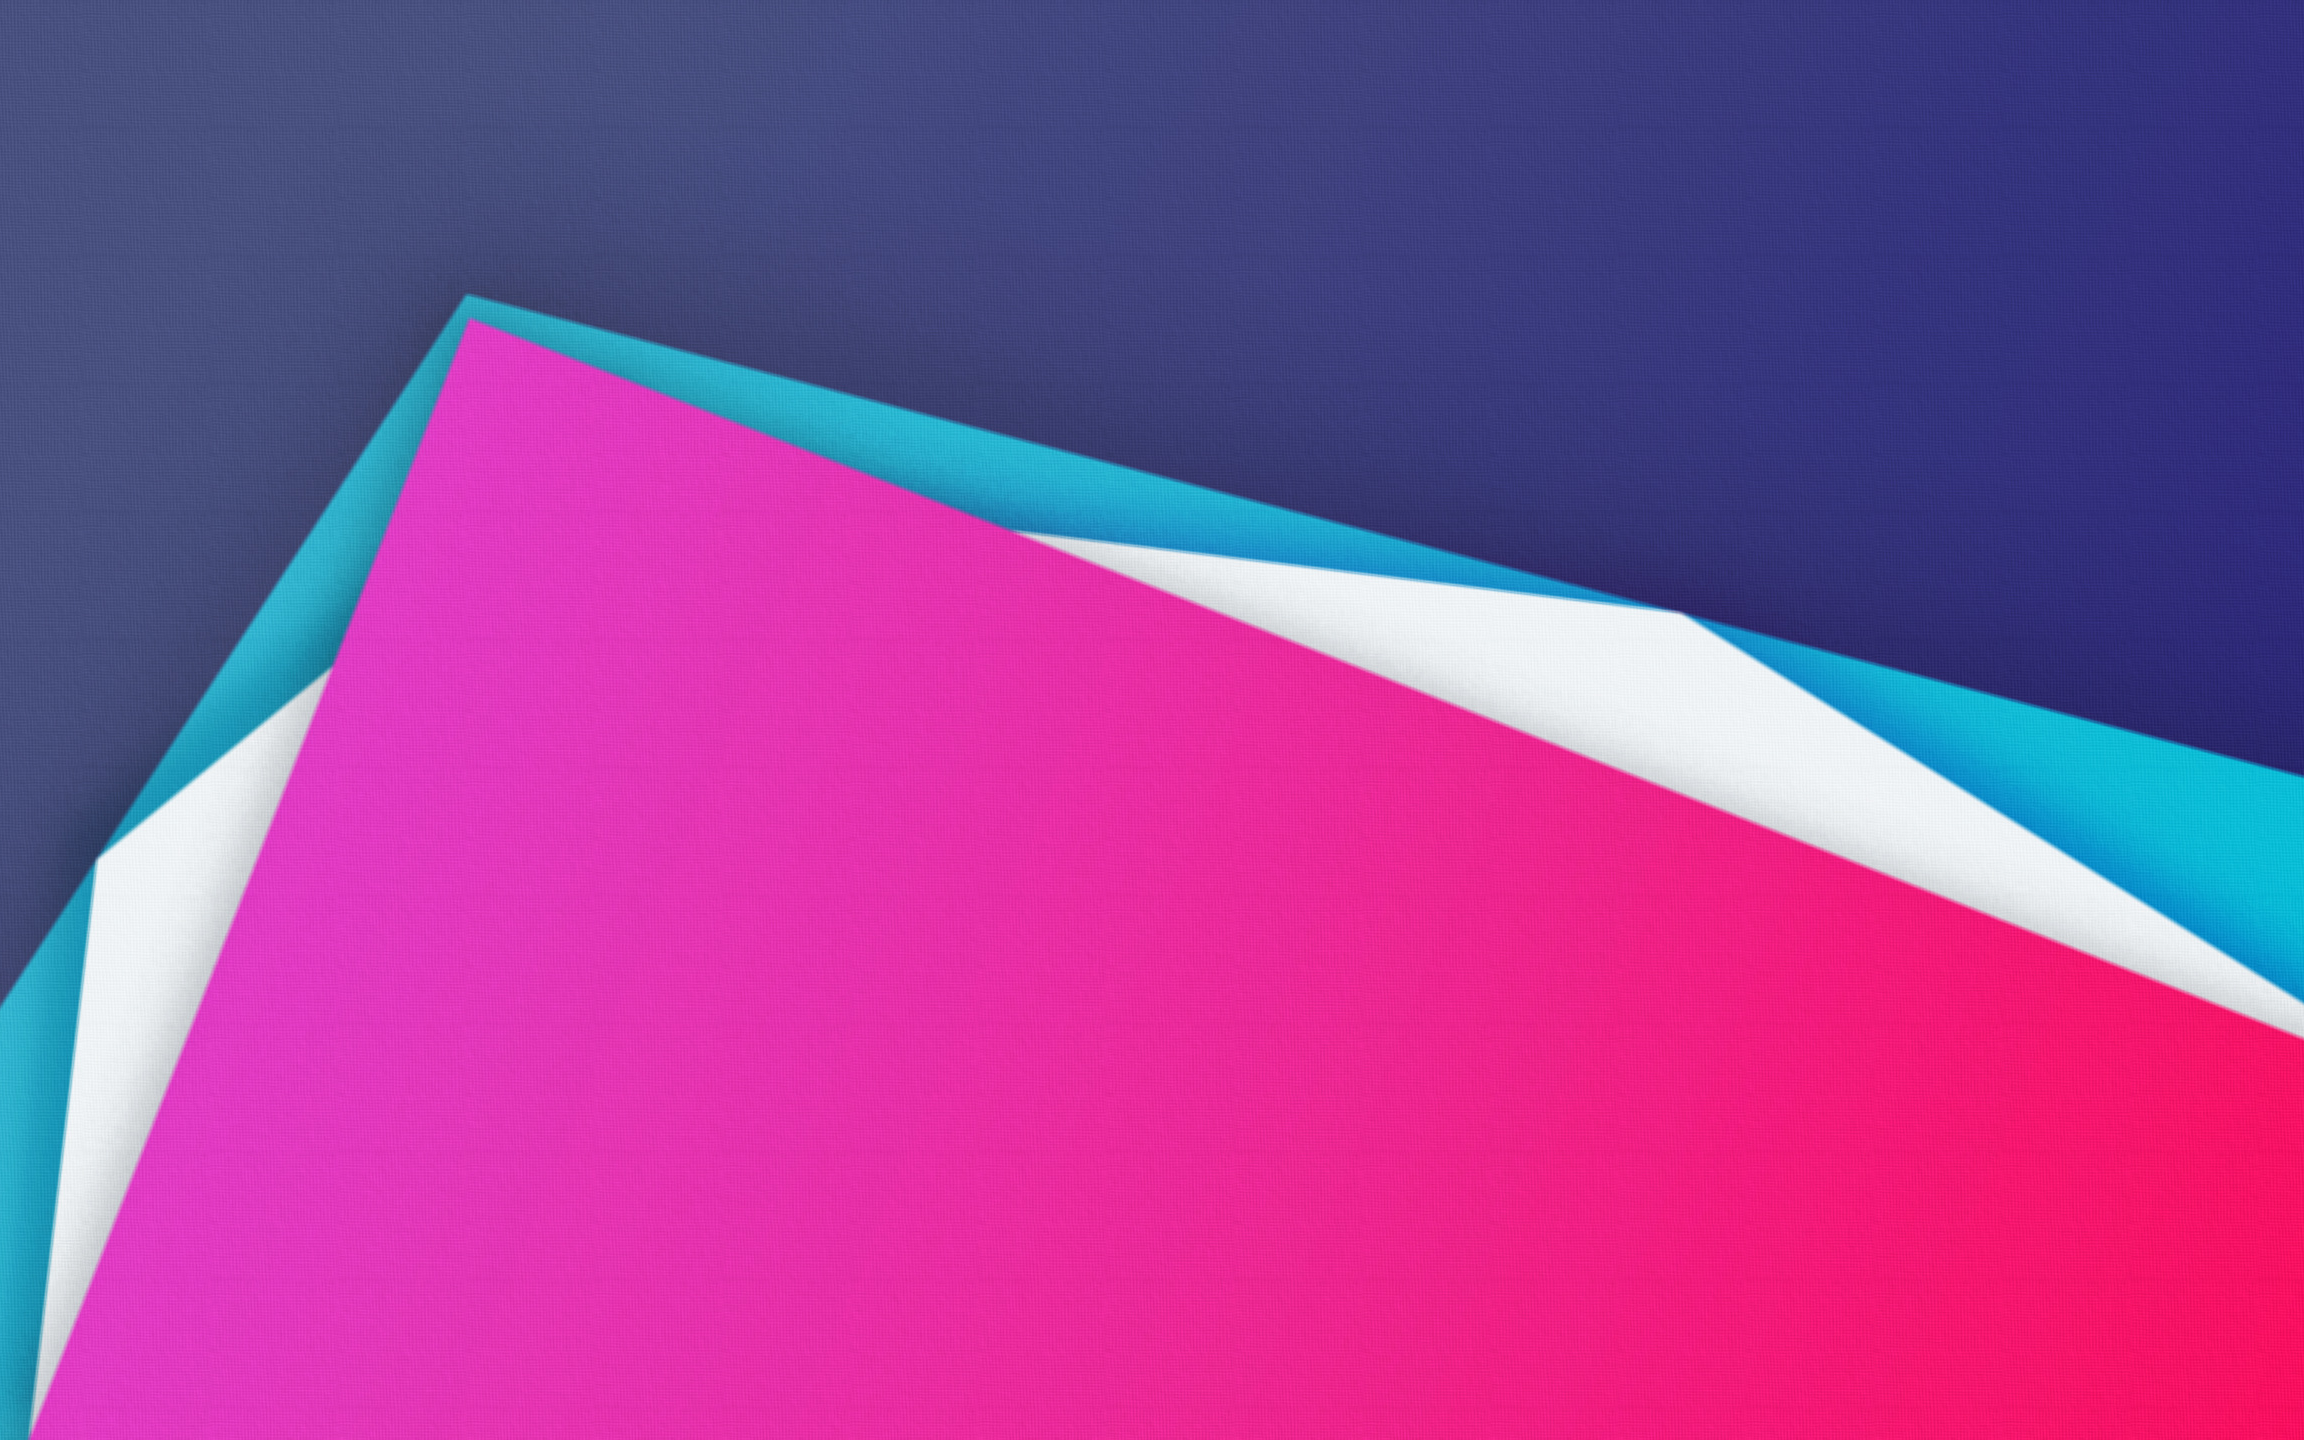 Color Geometry And Abstract Wallpaper Pack For Iphone And Desktop